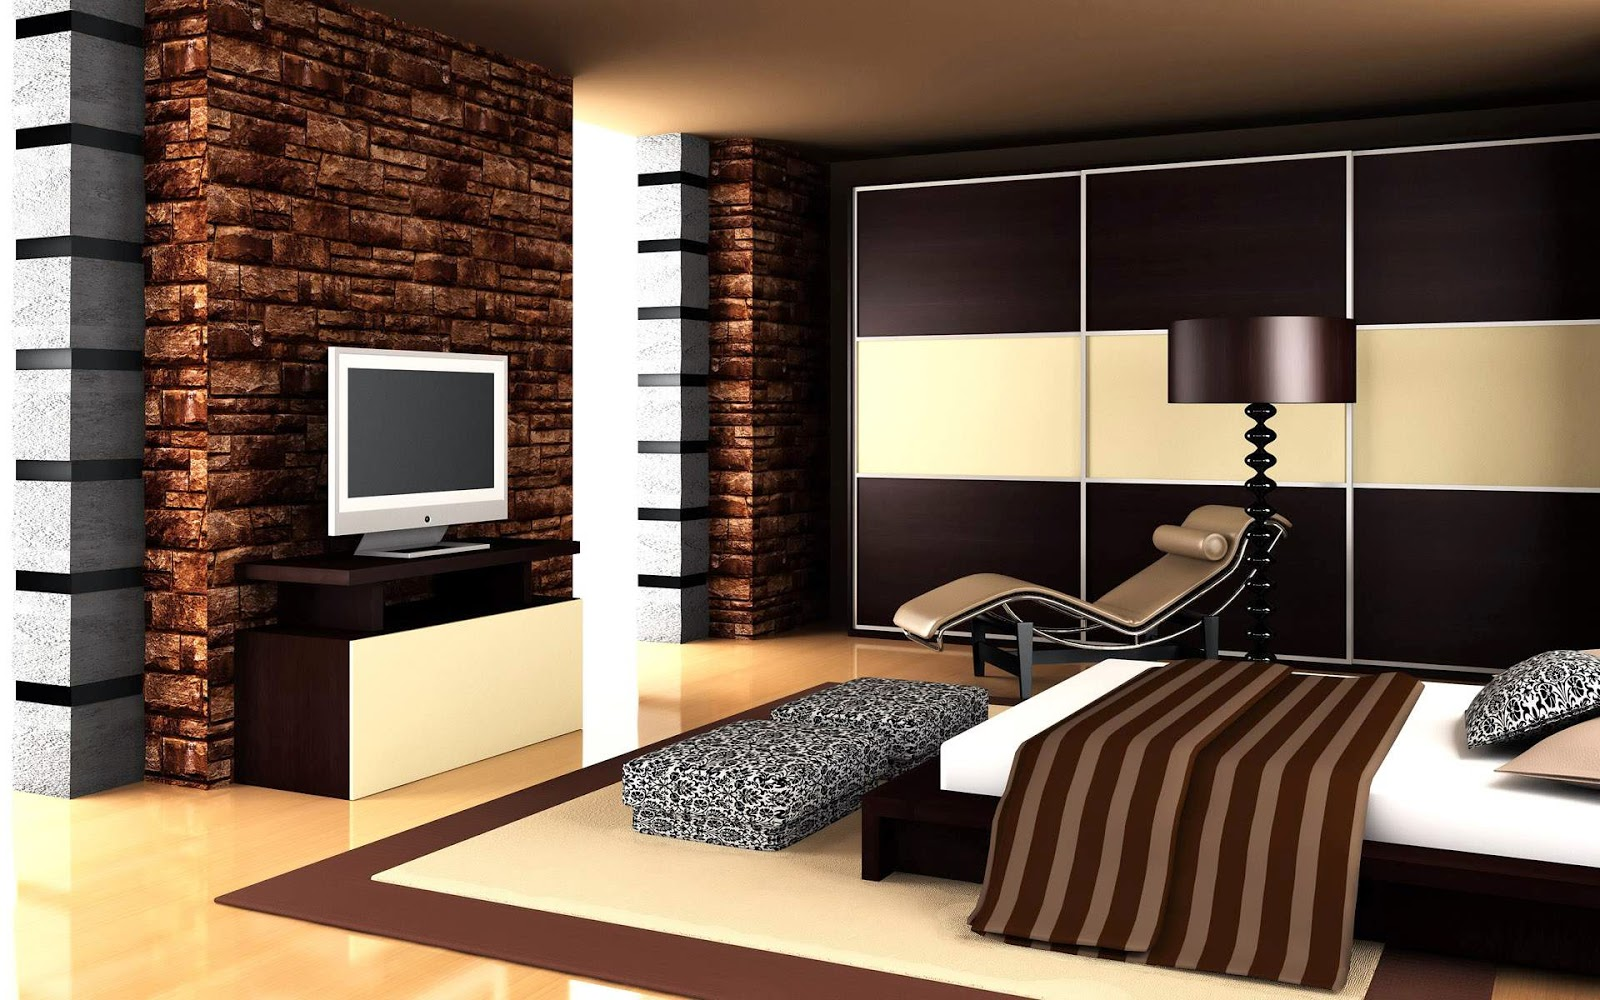 Wonderful Bedroom Interior Design On 2015